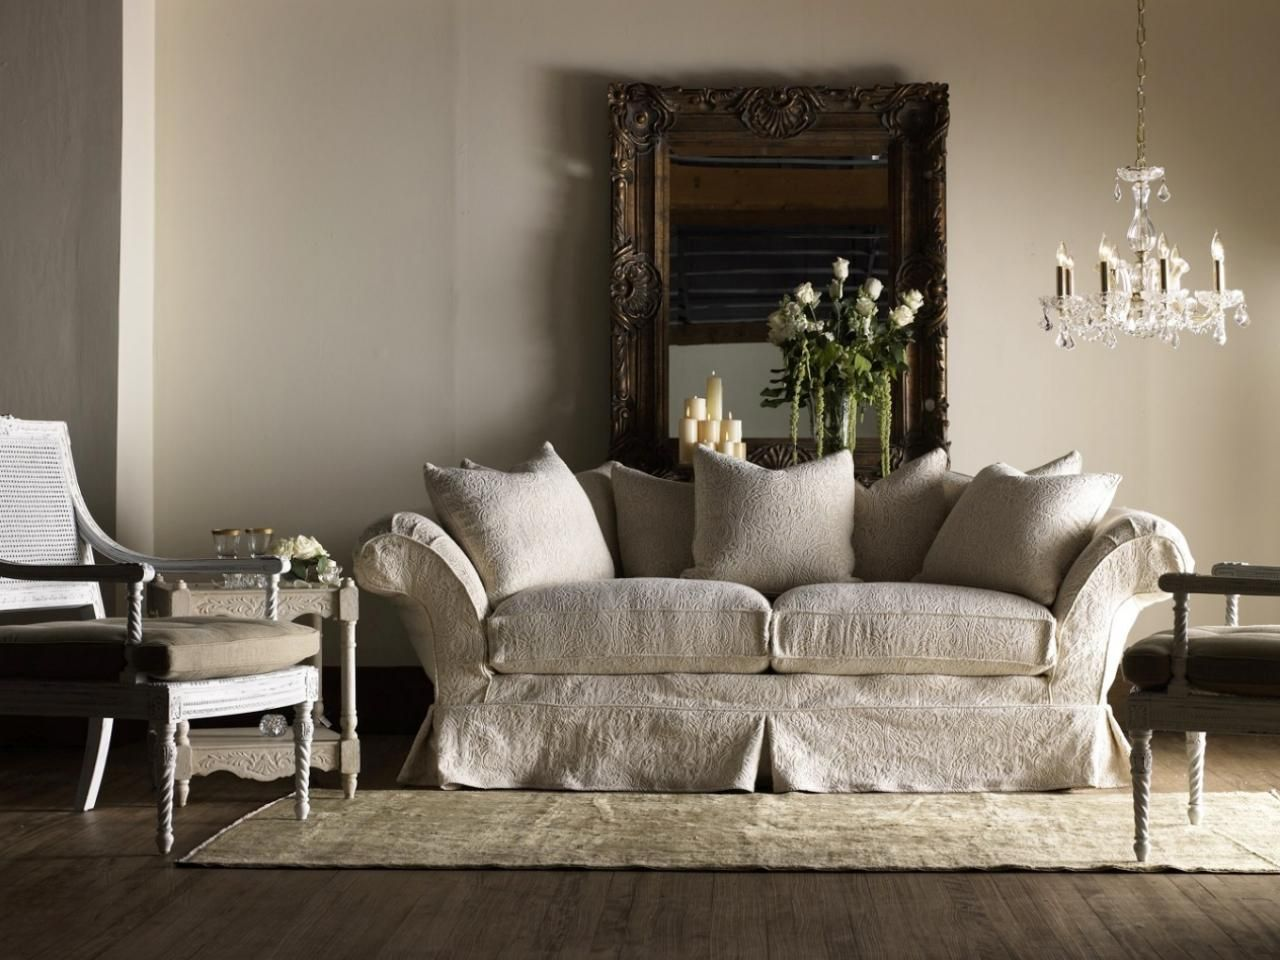 Canapé Shabby Chic beautiful sofa | shabby chic sofa, shabby chic living room